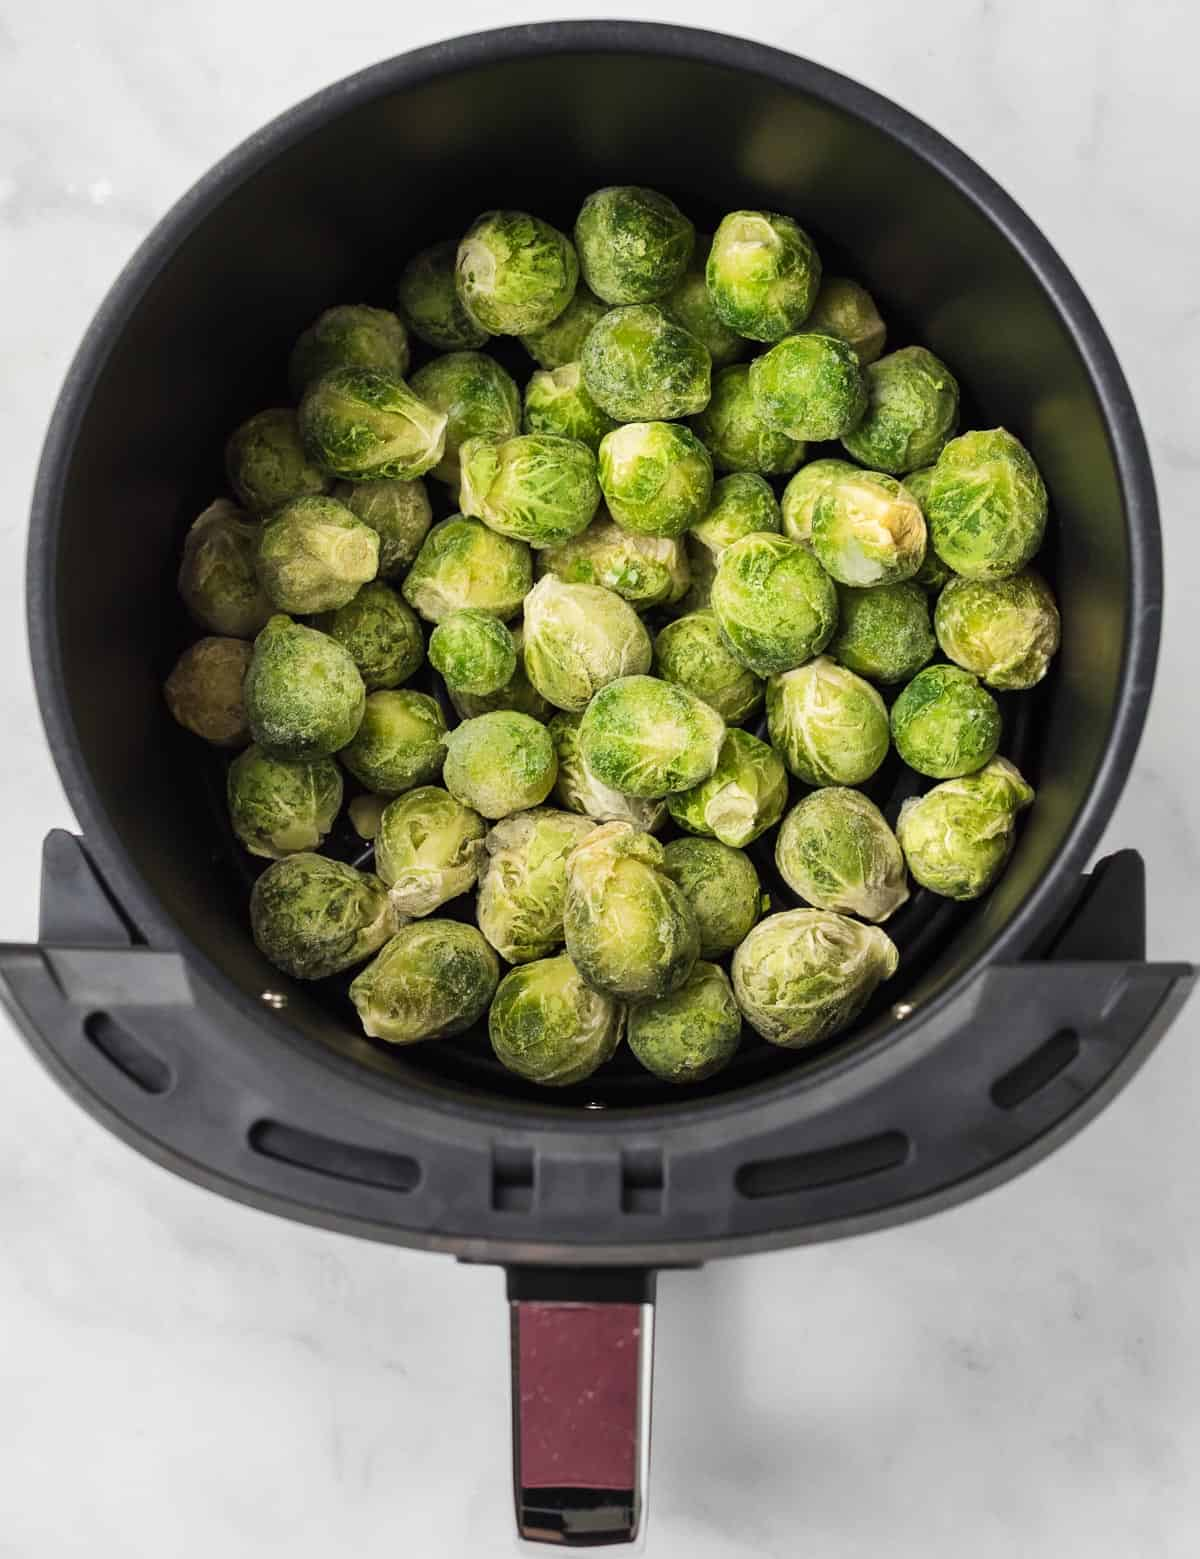 frozen brussel sprouts in an air fryer